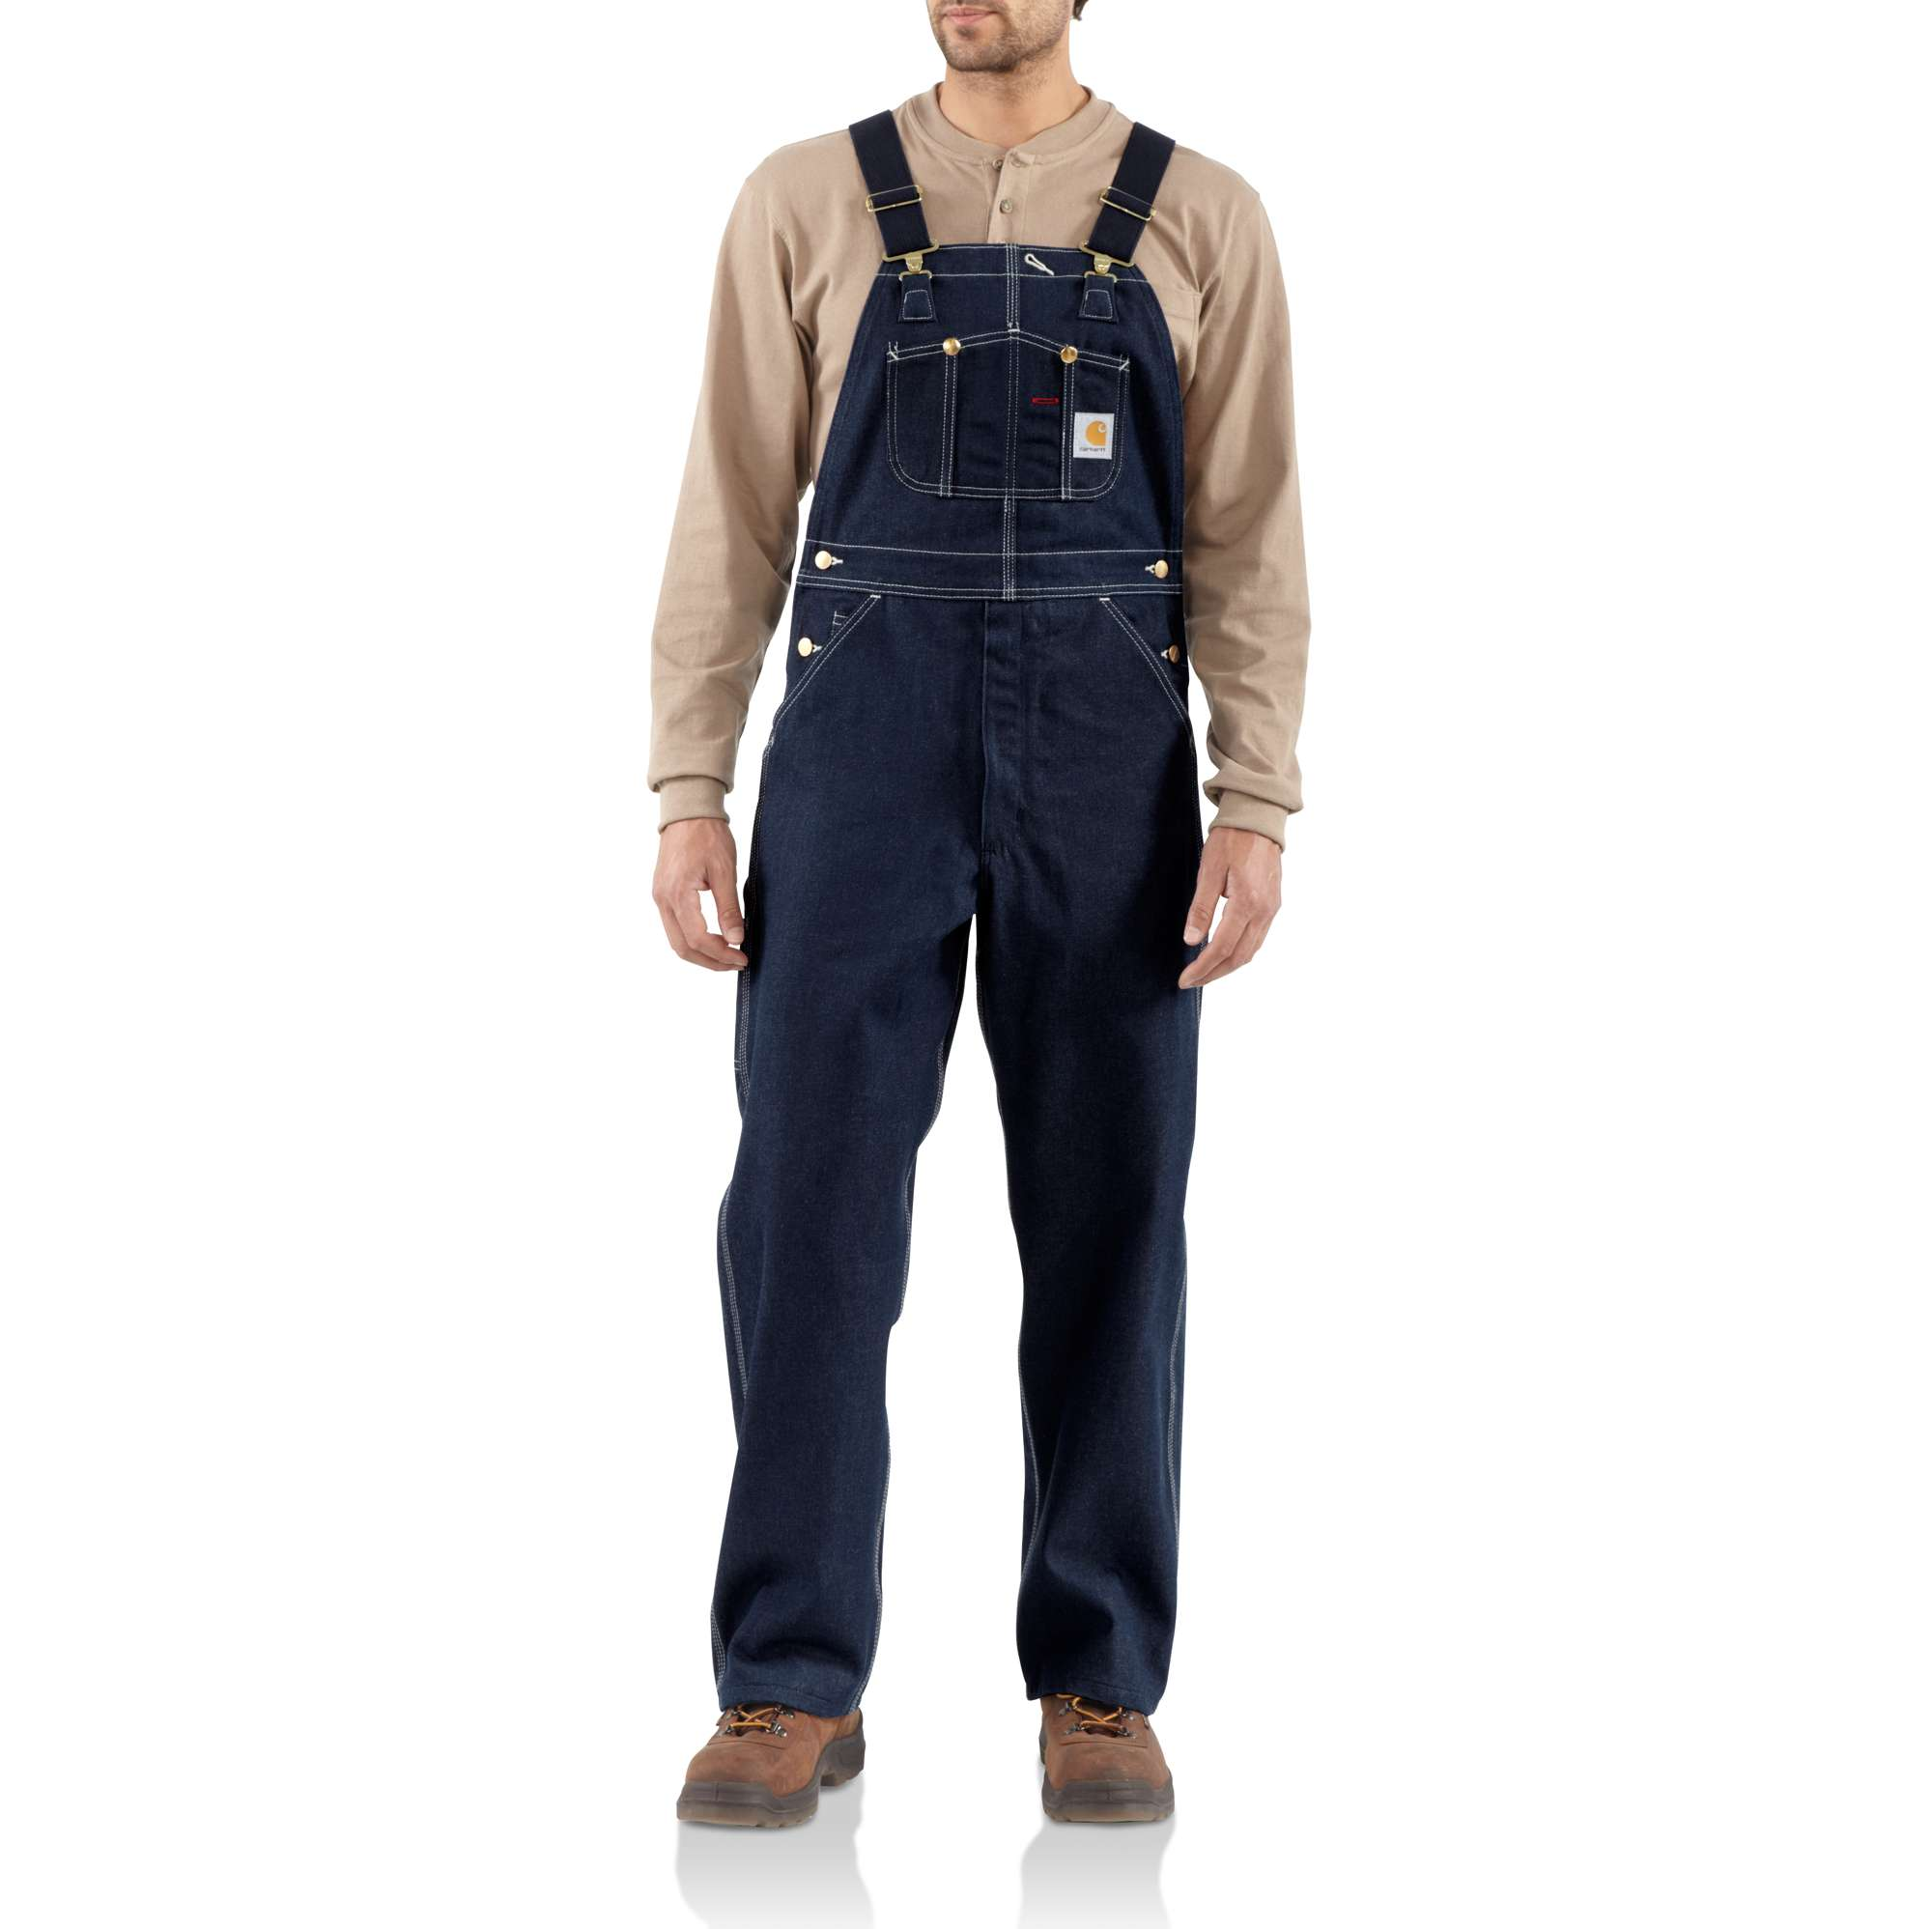 Carhartt Men Denim Bib Overall - Unlined | Carhartt